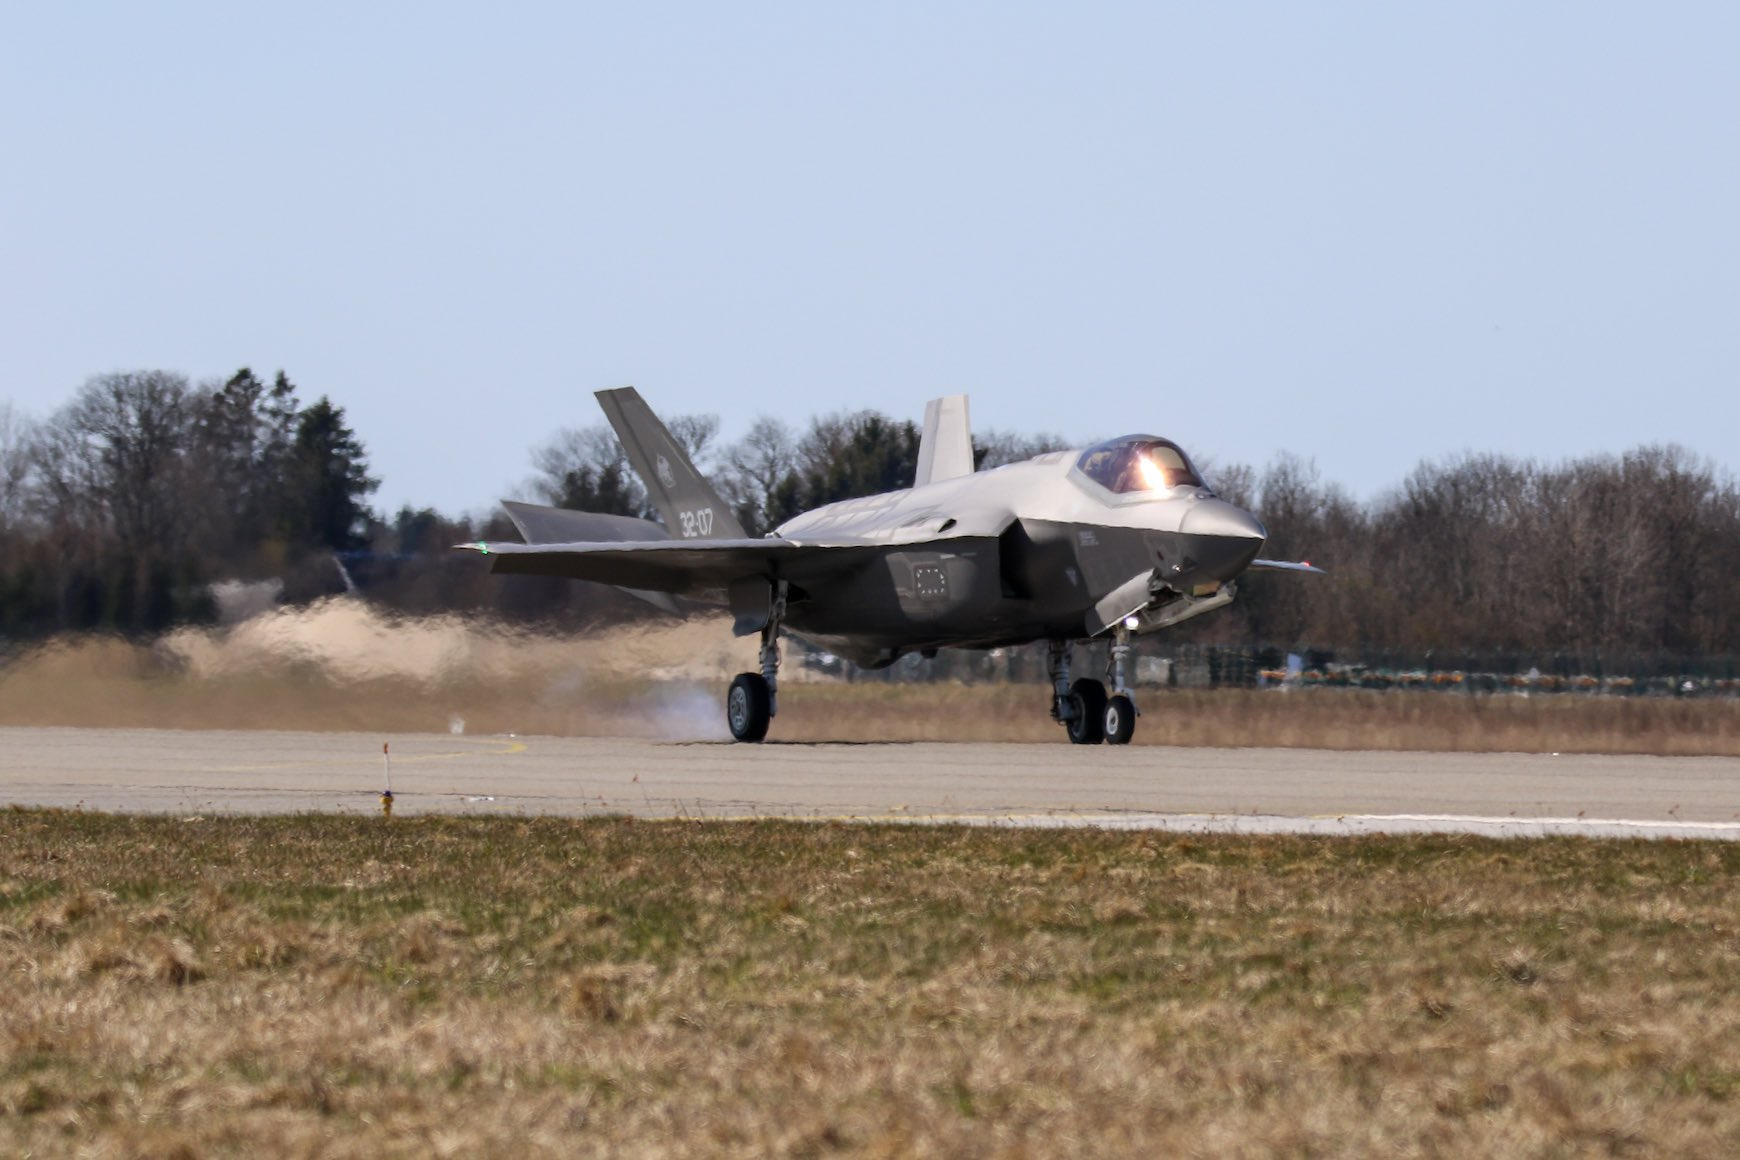 Italian Air Force deploys four F-35A stealth fighters to Estonia